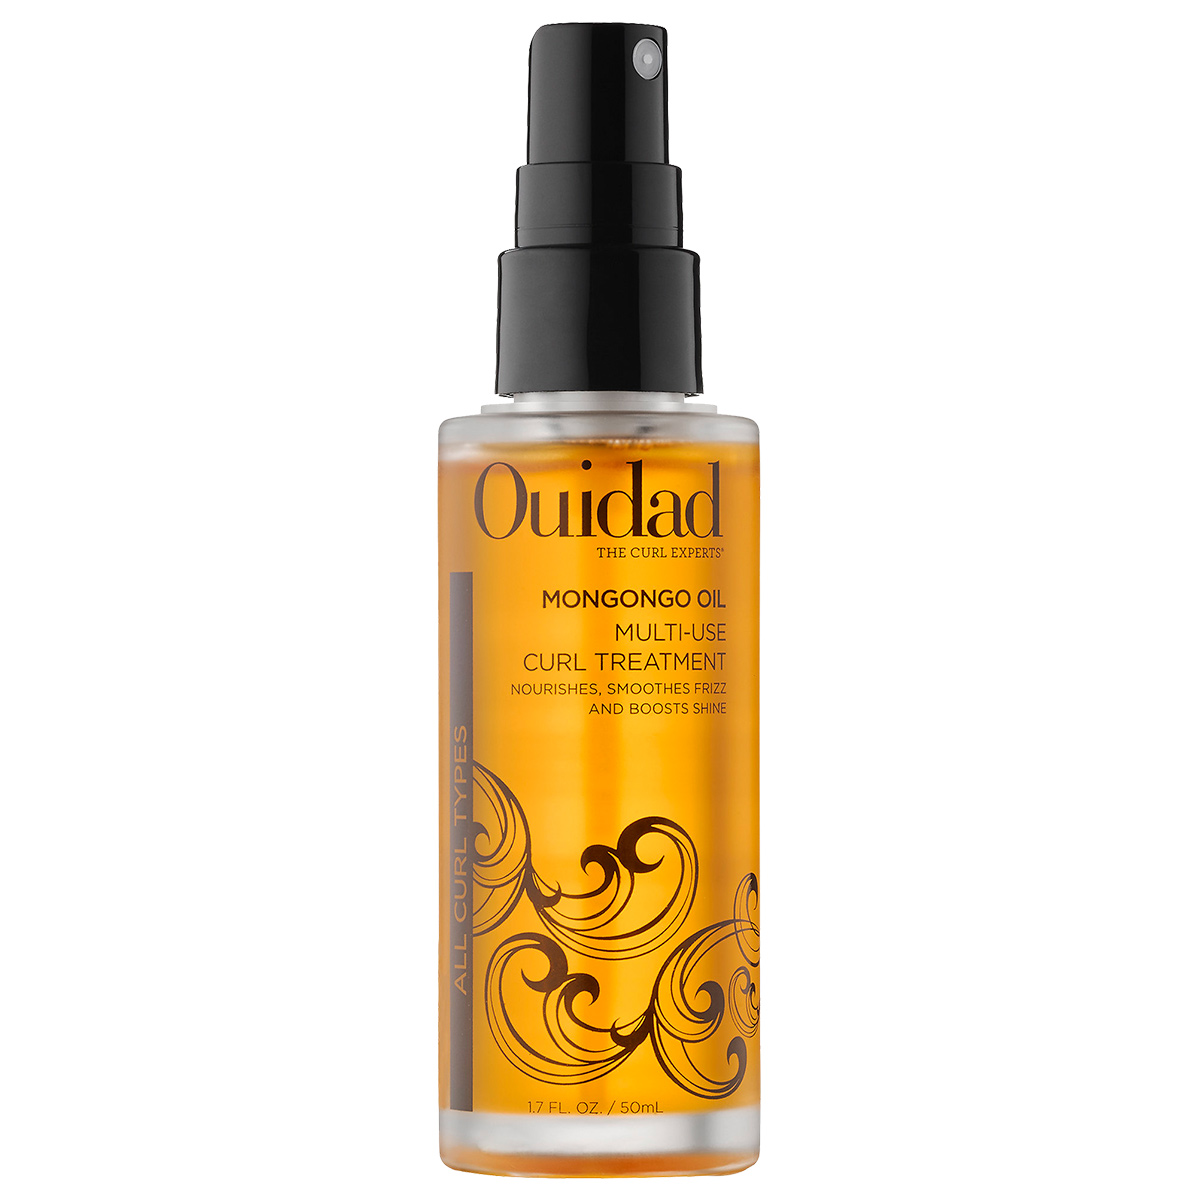 <p>For Curly Hair: Ouidad Mongongo Oil Multi-Use Curl Treatment </p>